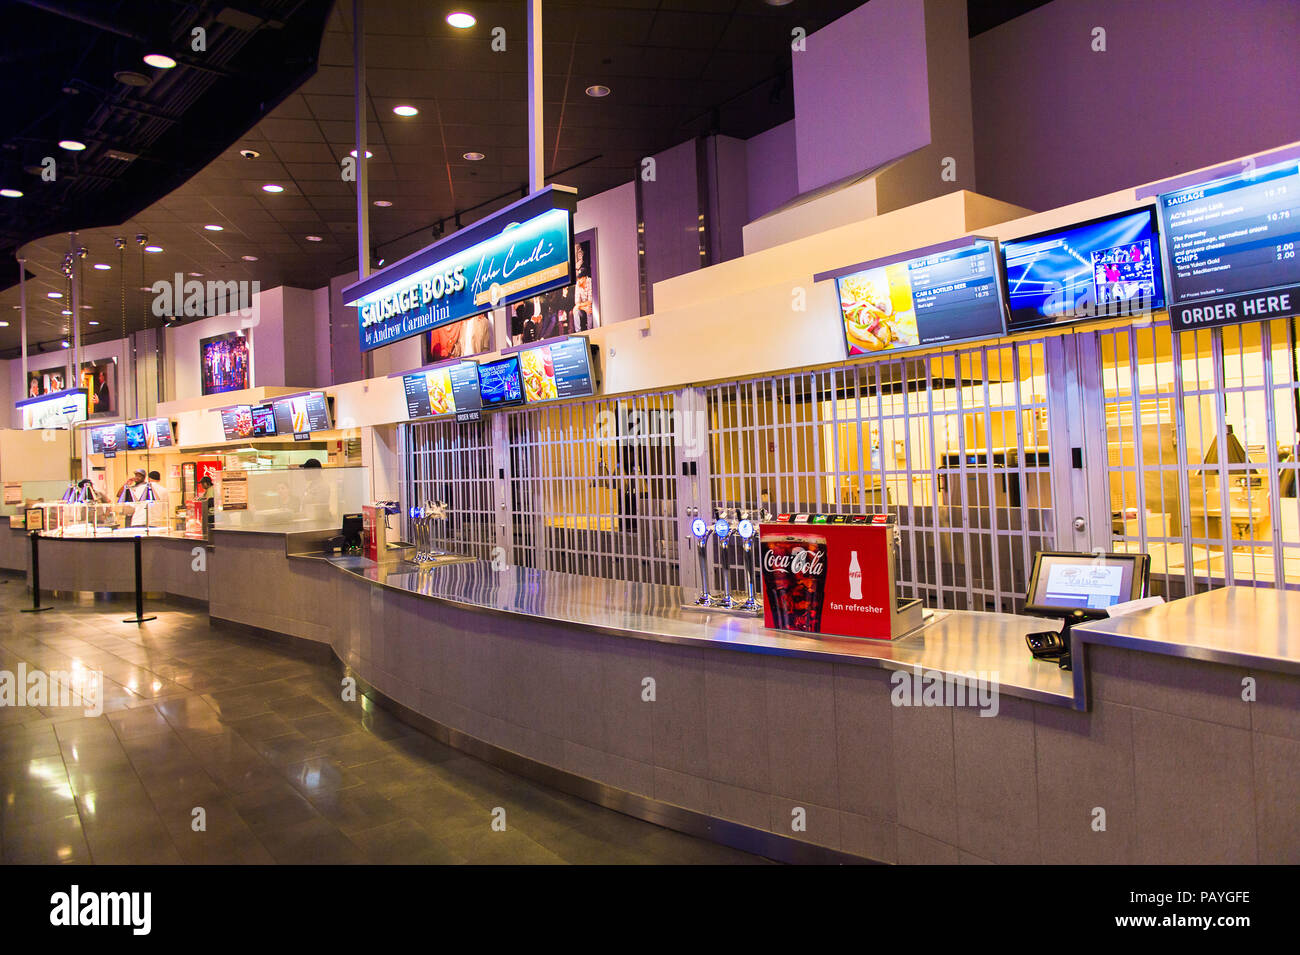 NEW YORK, USA - OCT 8, 2015: Sausage boss at the Food court at the Madison Square Garden, New York City. MSG is the arena for basketball, ice hockey,  Stock Photo